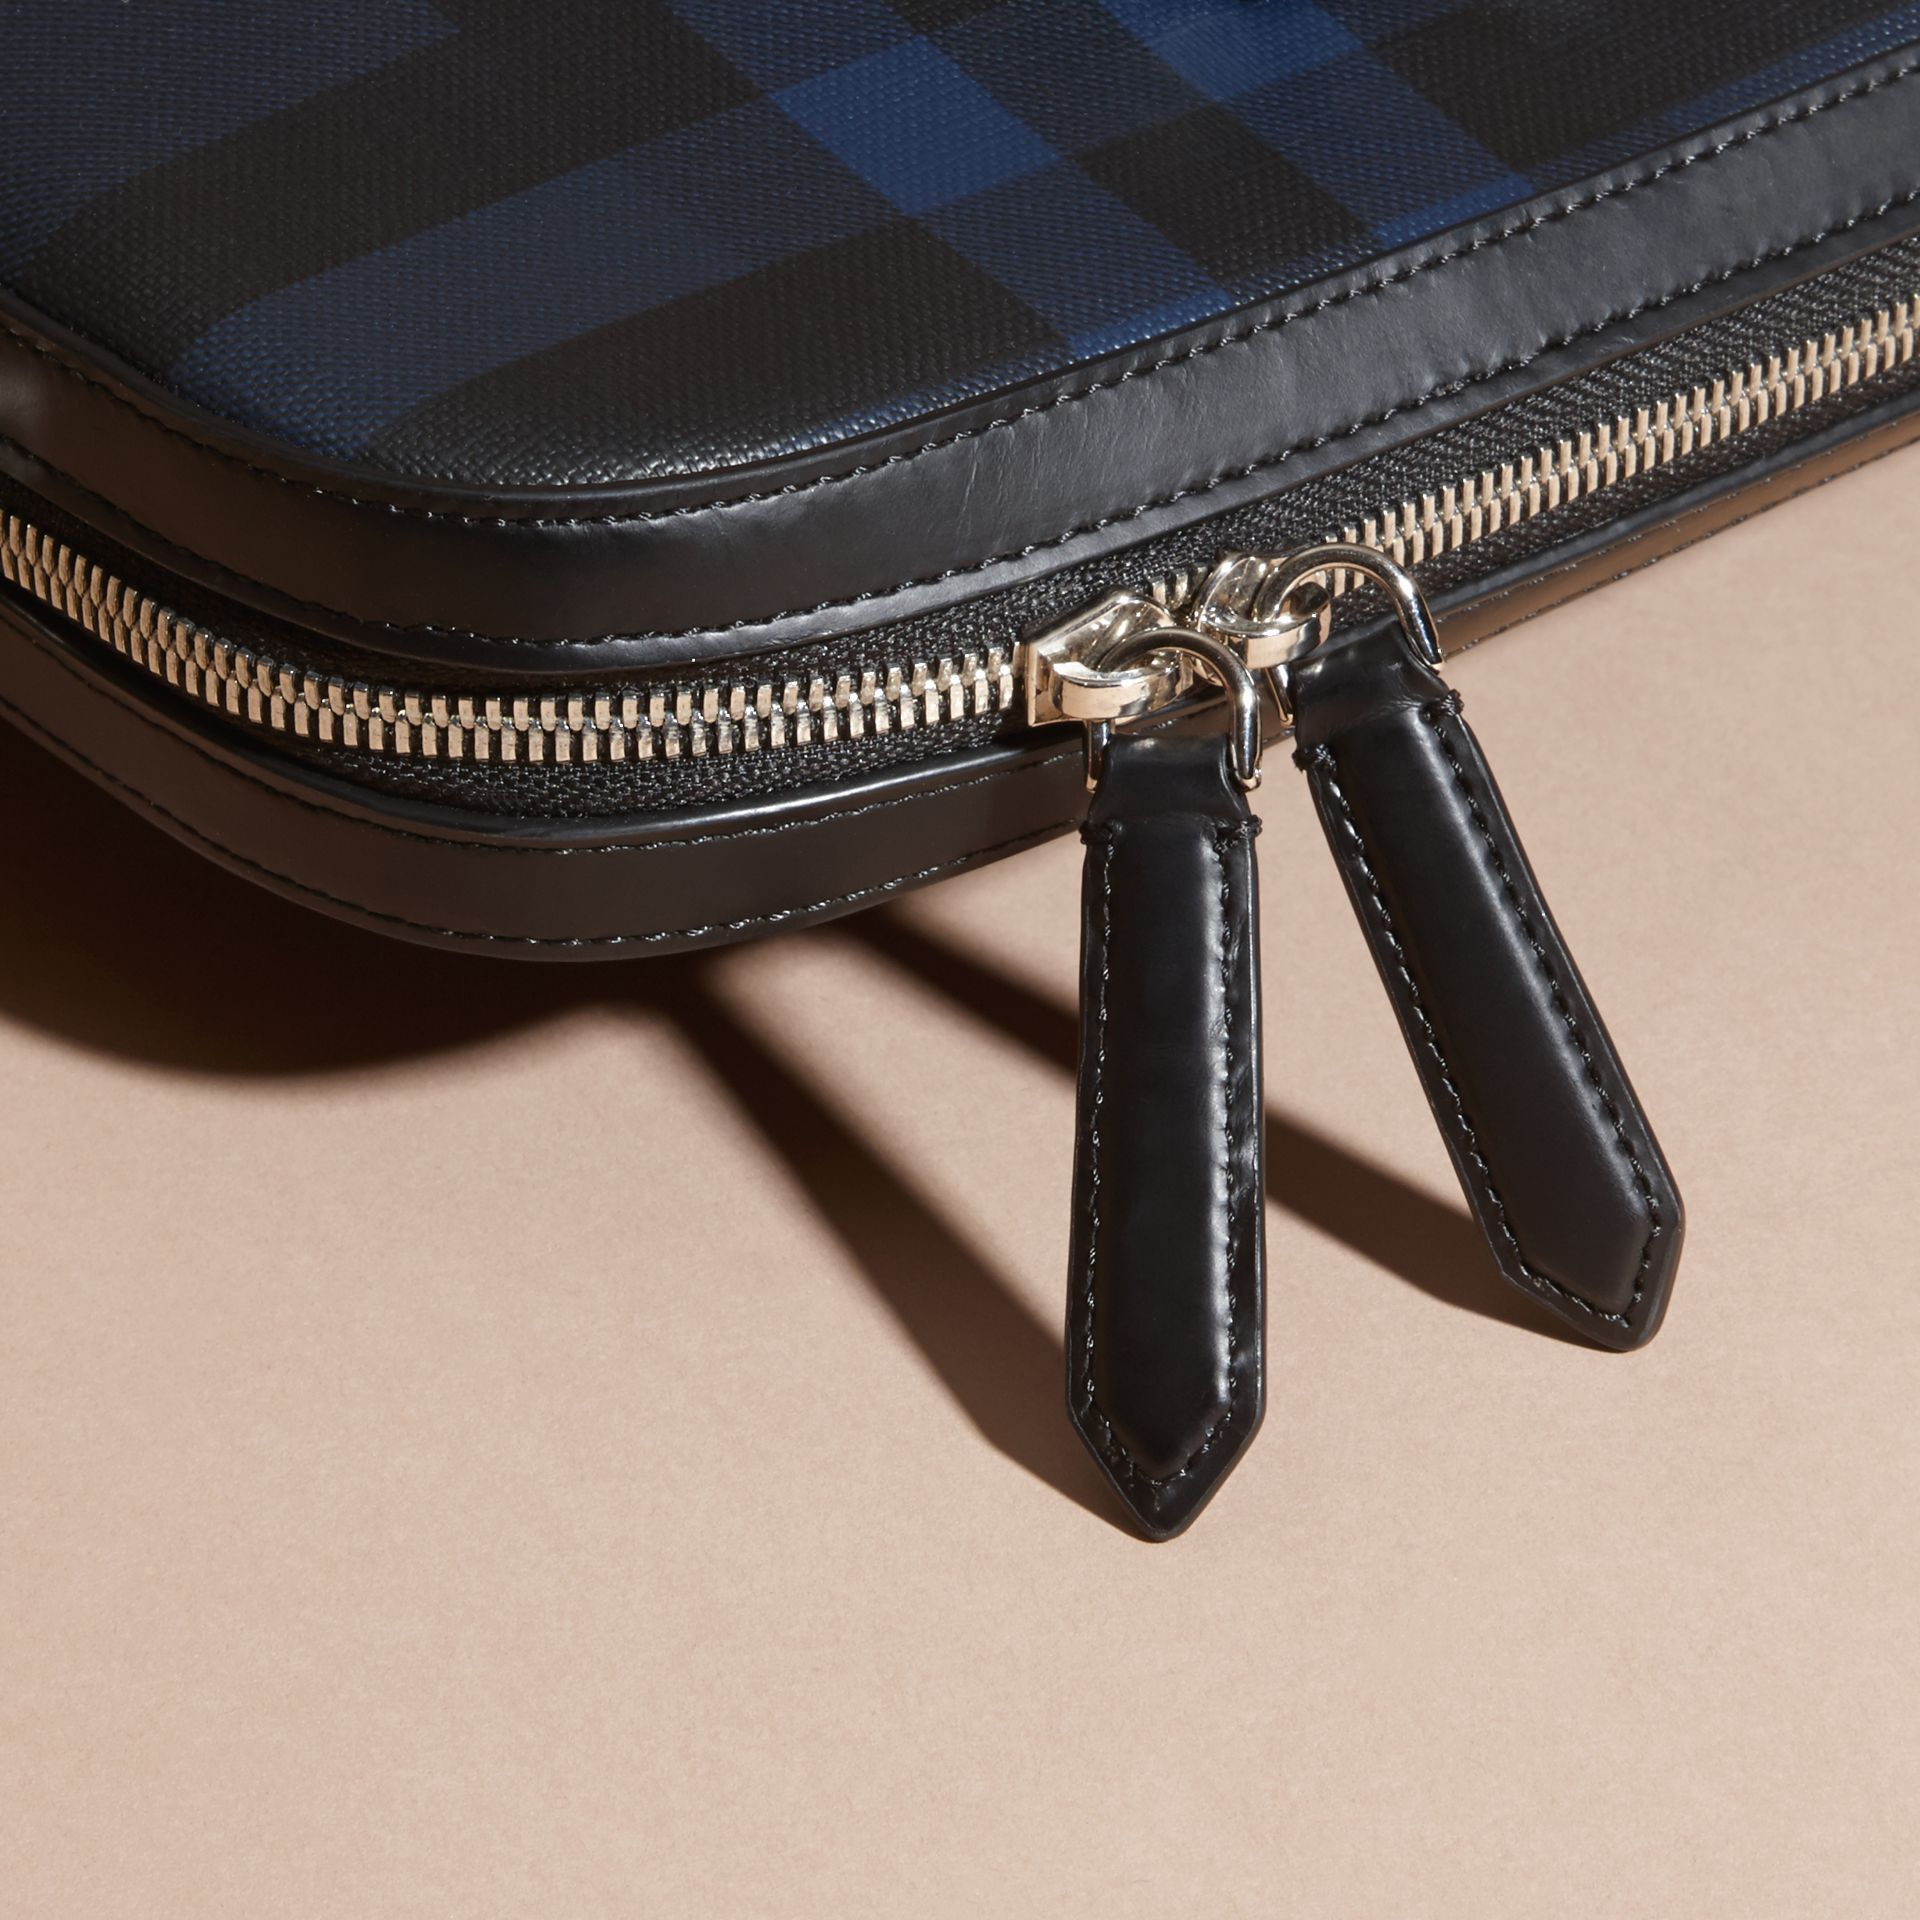 The Slim Barrow in London Check in Navy/black - Men | Burberry Singapore - gallery image 6